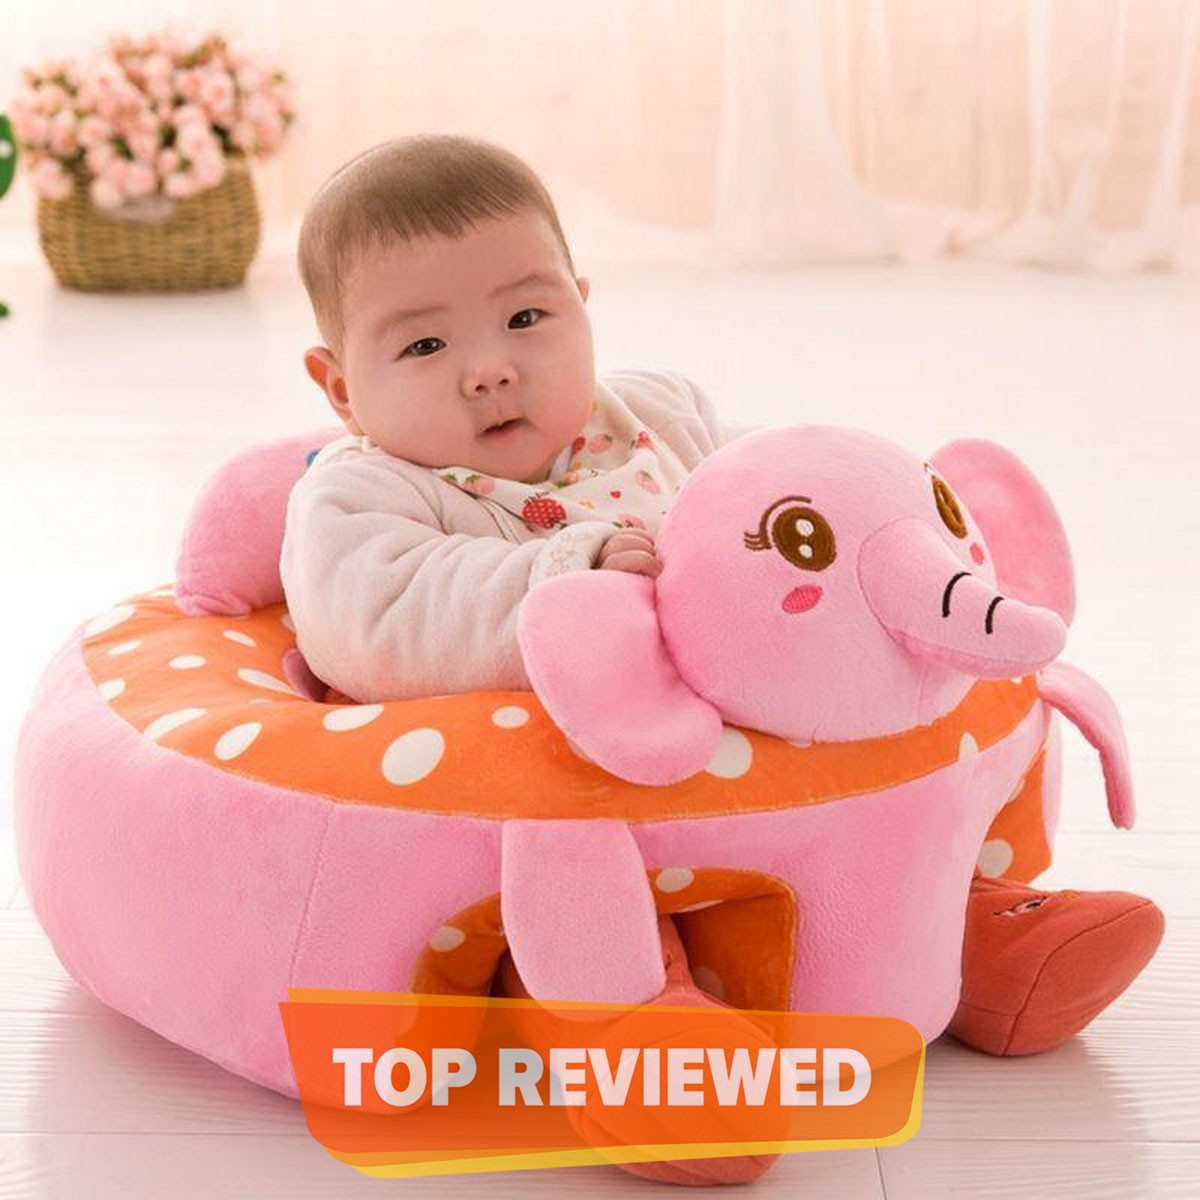 Baby Pink Elephant Seats Sofa Plush Support Seat Learning To Sit Baby Plush Toys